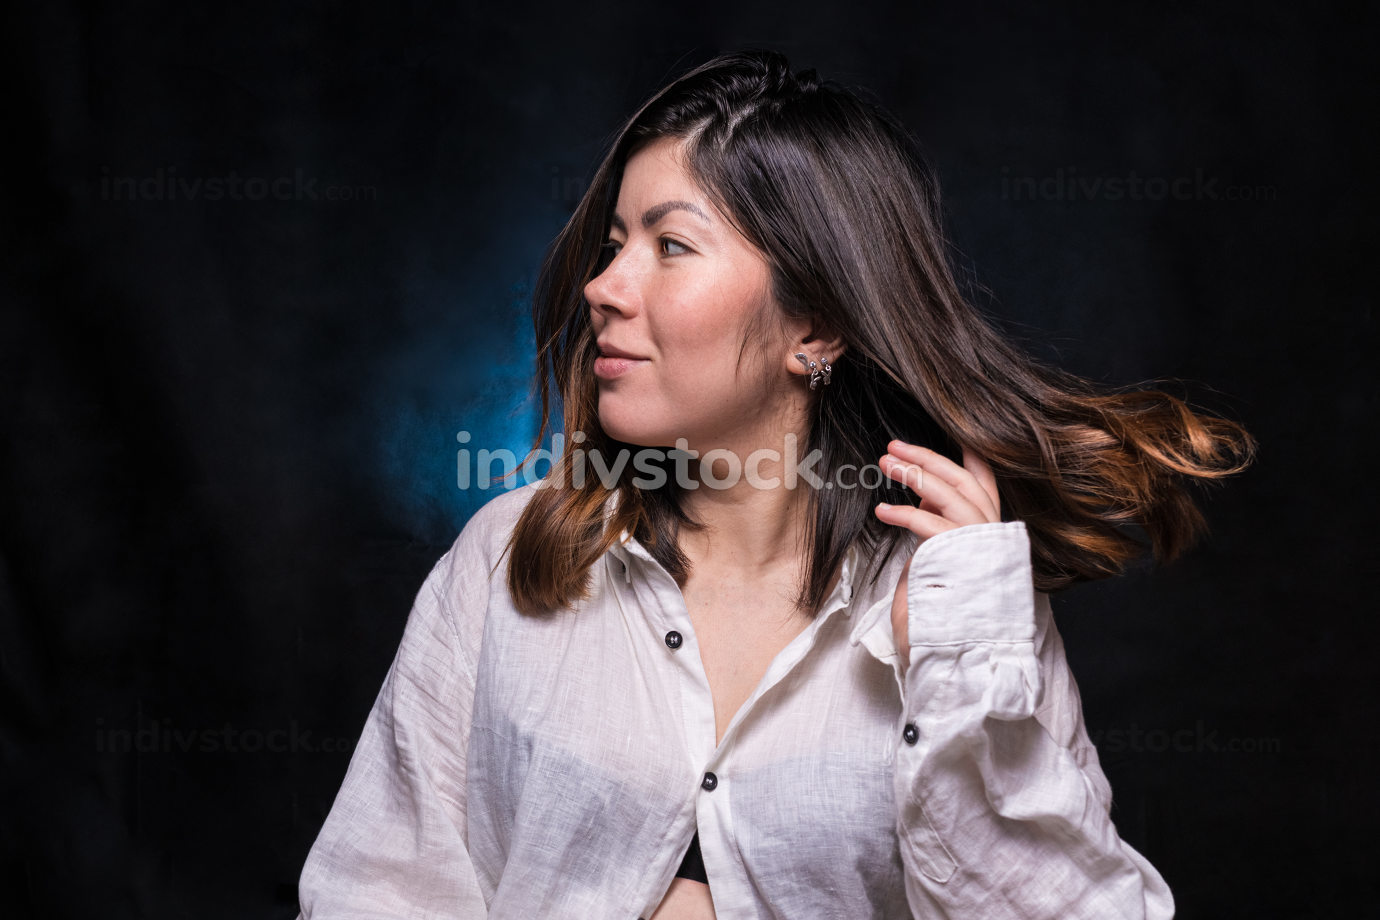 cheerful young brunette girl in a white shirt straightens her hair with her hand